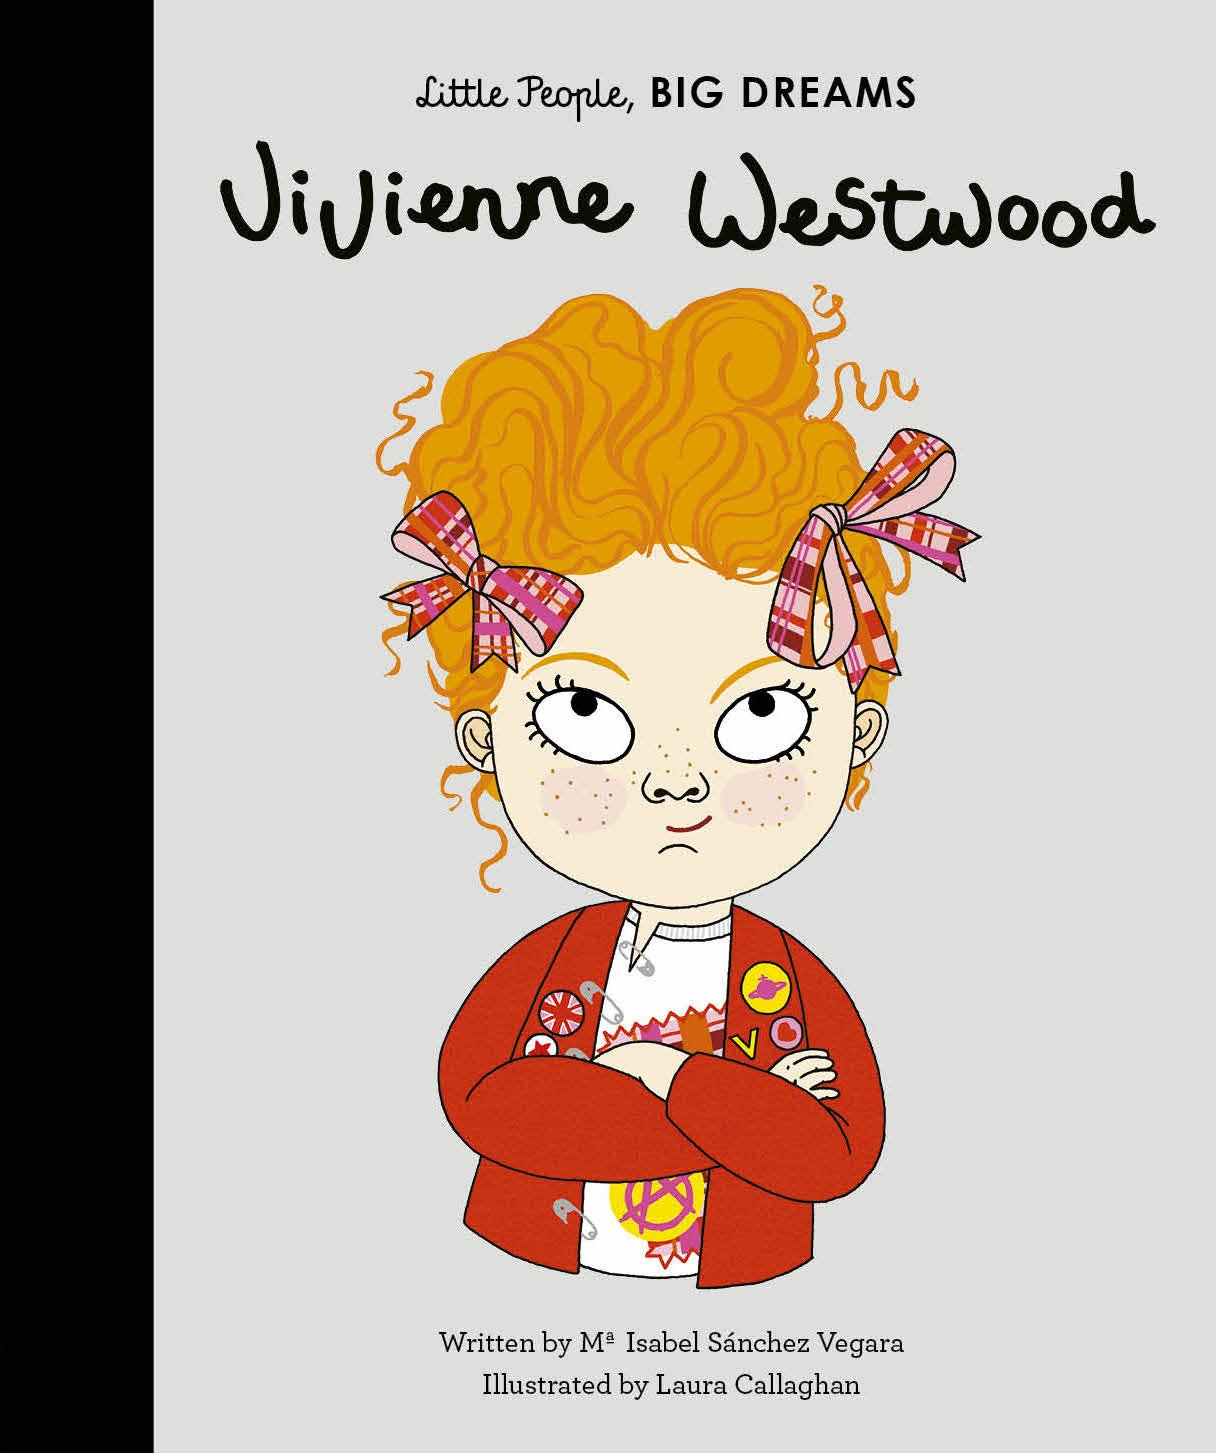 Little People, Big Dreams: Vivienne Westwood by Ma Isabel Sanchez Vegara